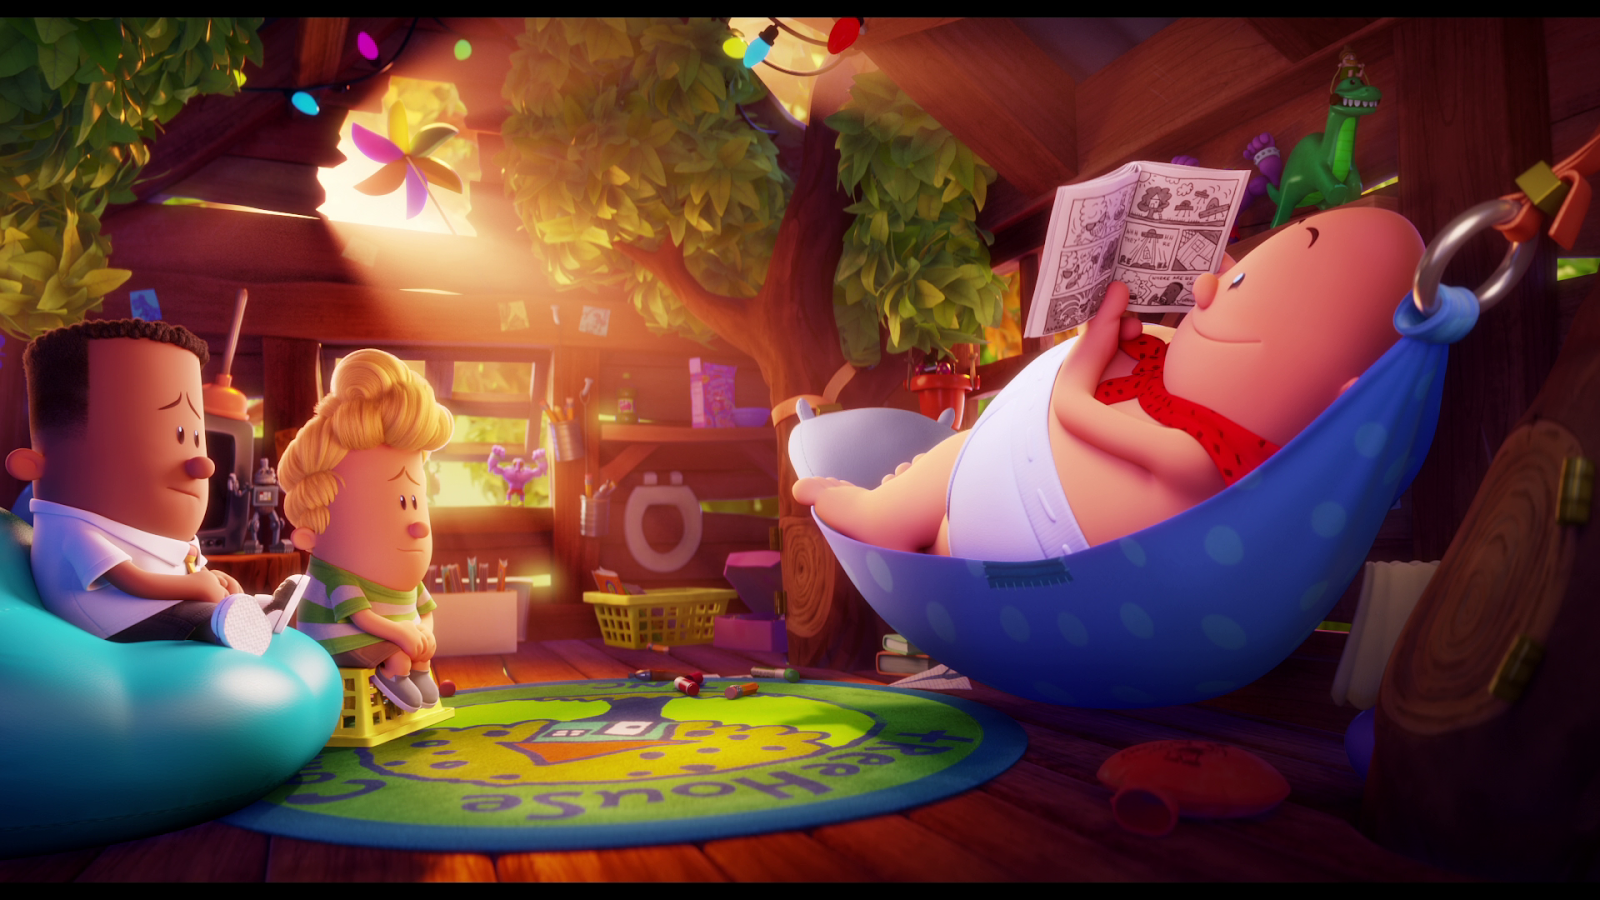 Gavin S Corner Captain Underpants The First Epic Movie 4k Blu Ray Review